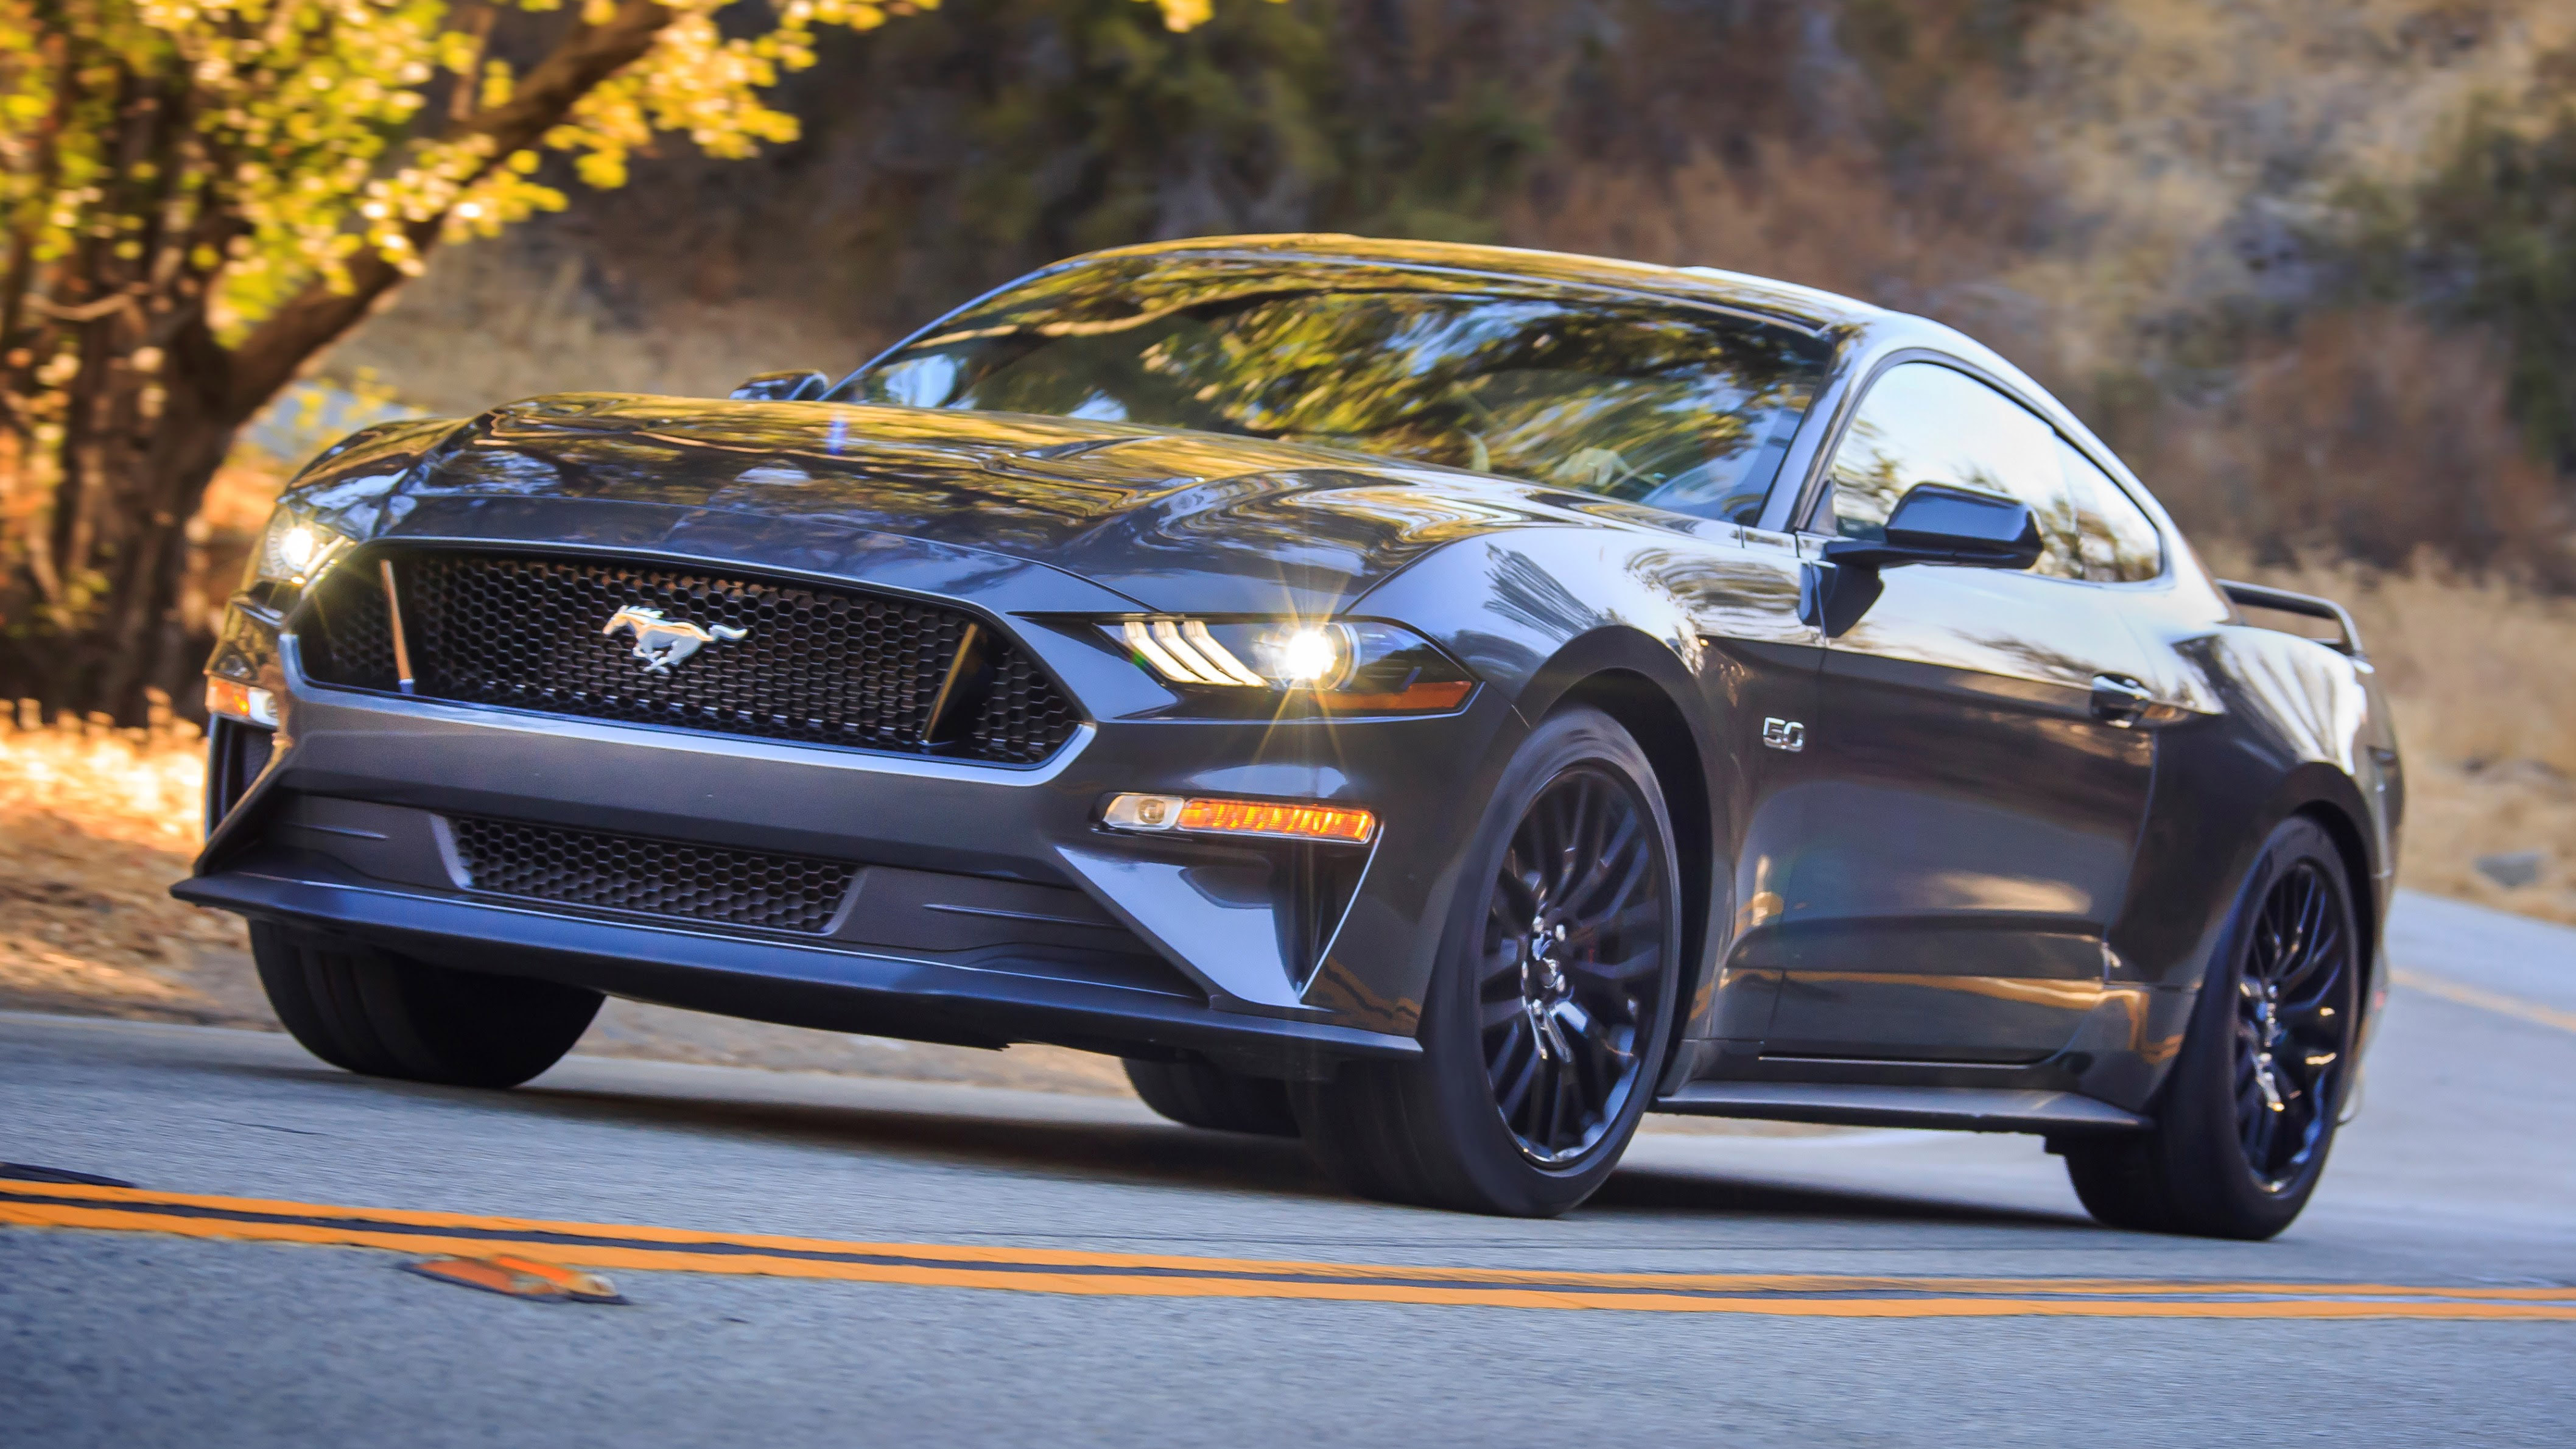 jcr new blue viewmore fna design content advanced en kona rightrailpar performace pack and in performance gt ford technology sleeker relatedphoto news improved image mustang ca more fordmedia with offers relatedmedia